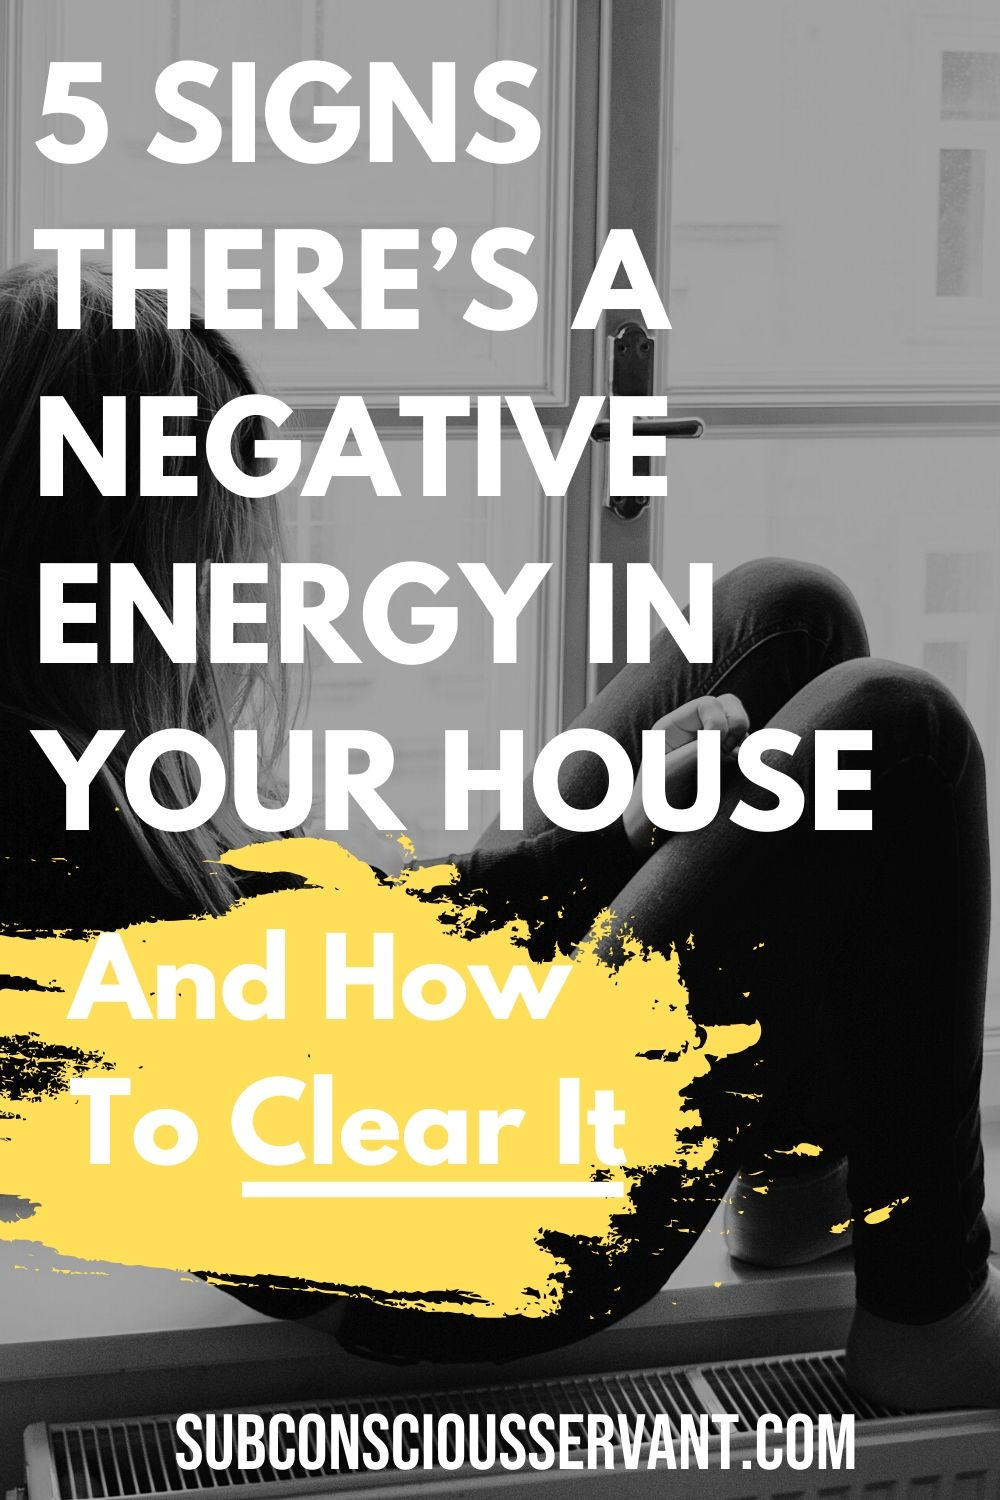 5 Signs There's A Negative Energy in Your House and How to Clear It